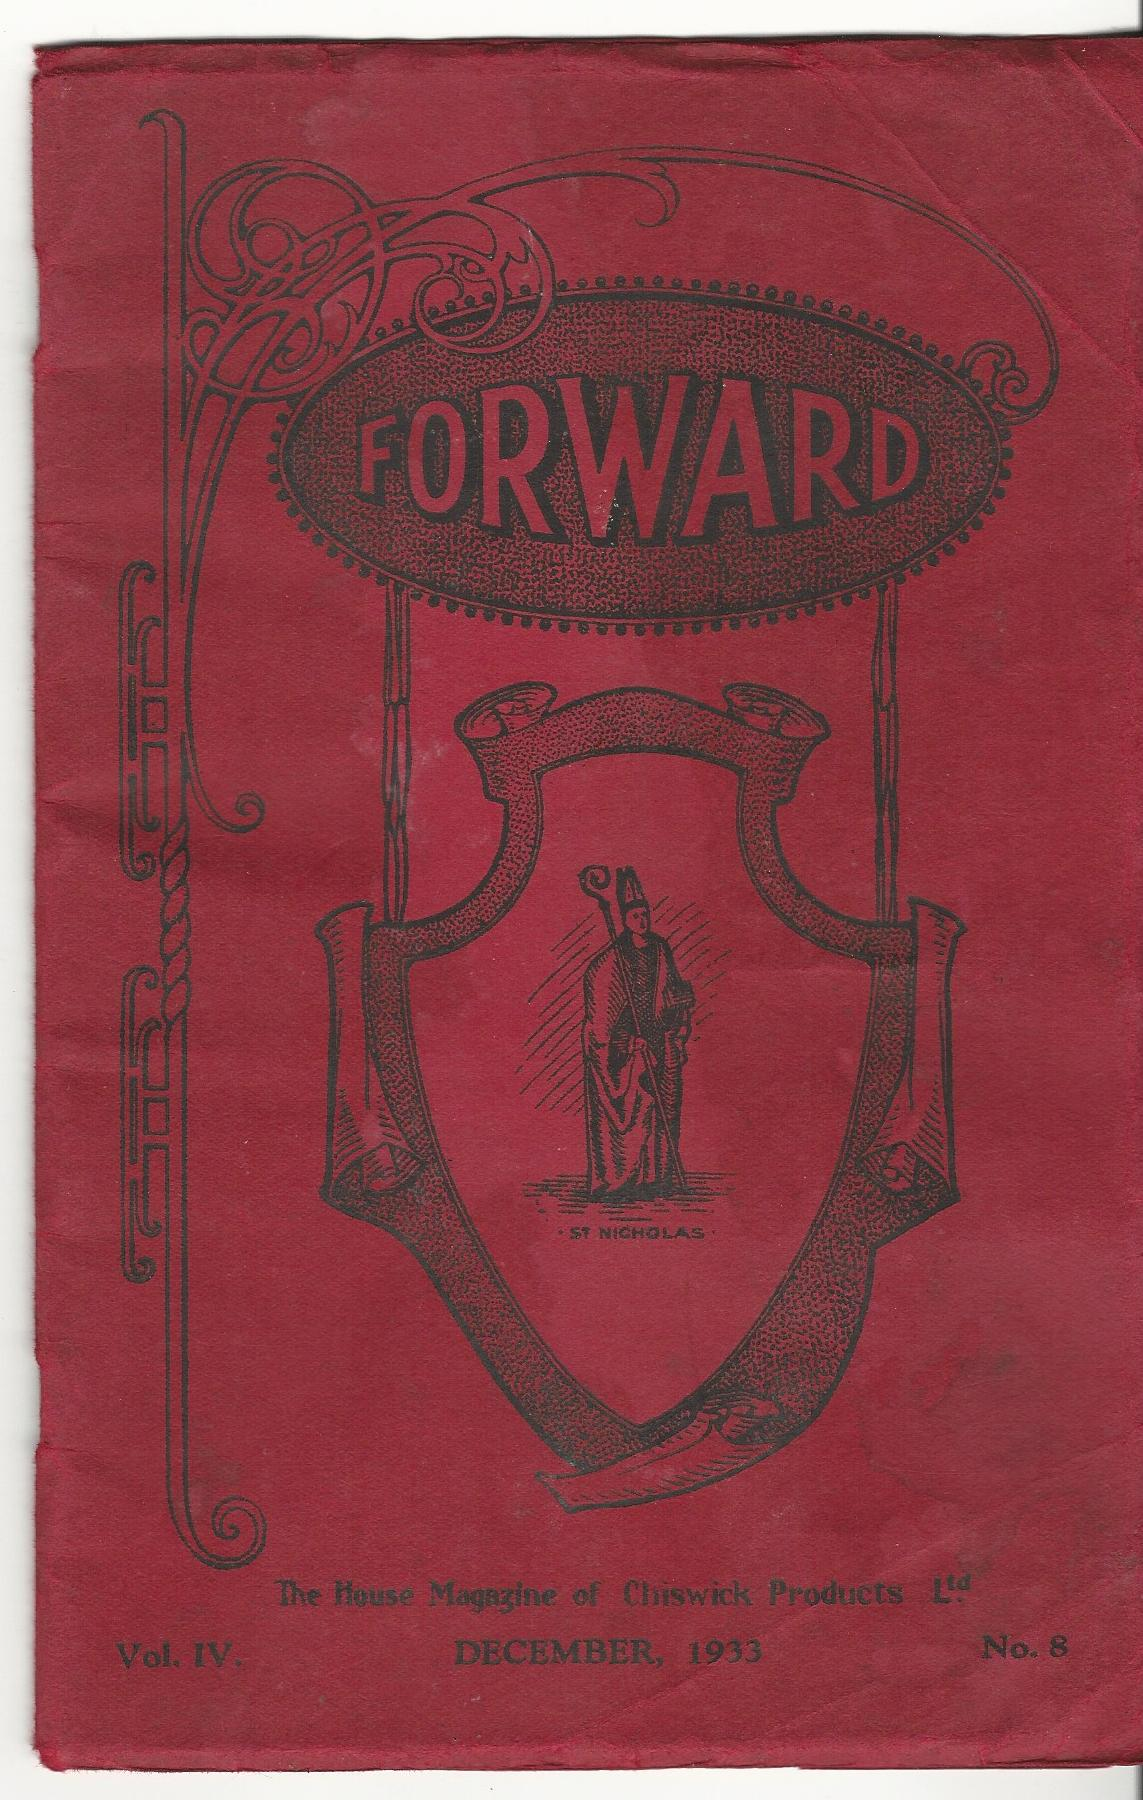 Image for Forward: The House Magazine of Chiswick Products Ltd. Vol. IV, No.8, December 1933.